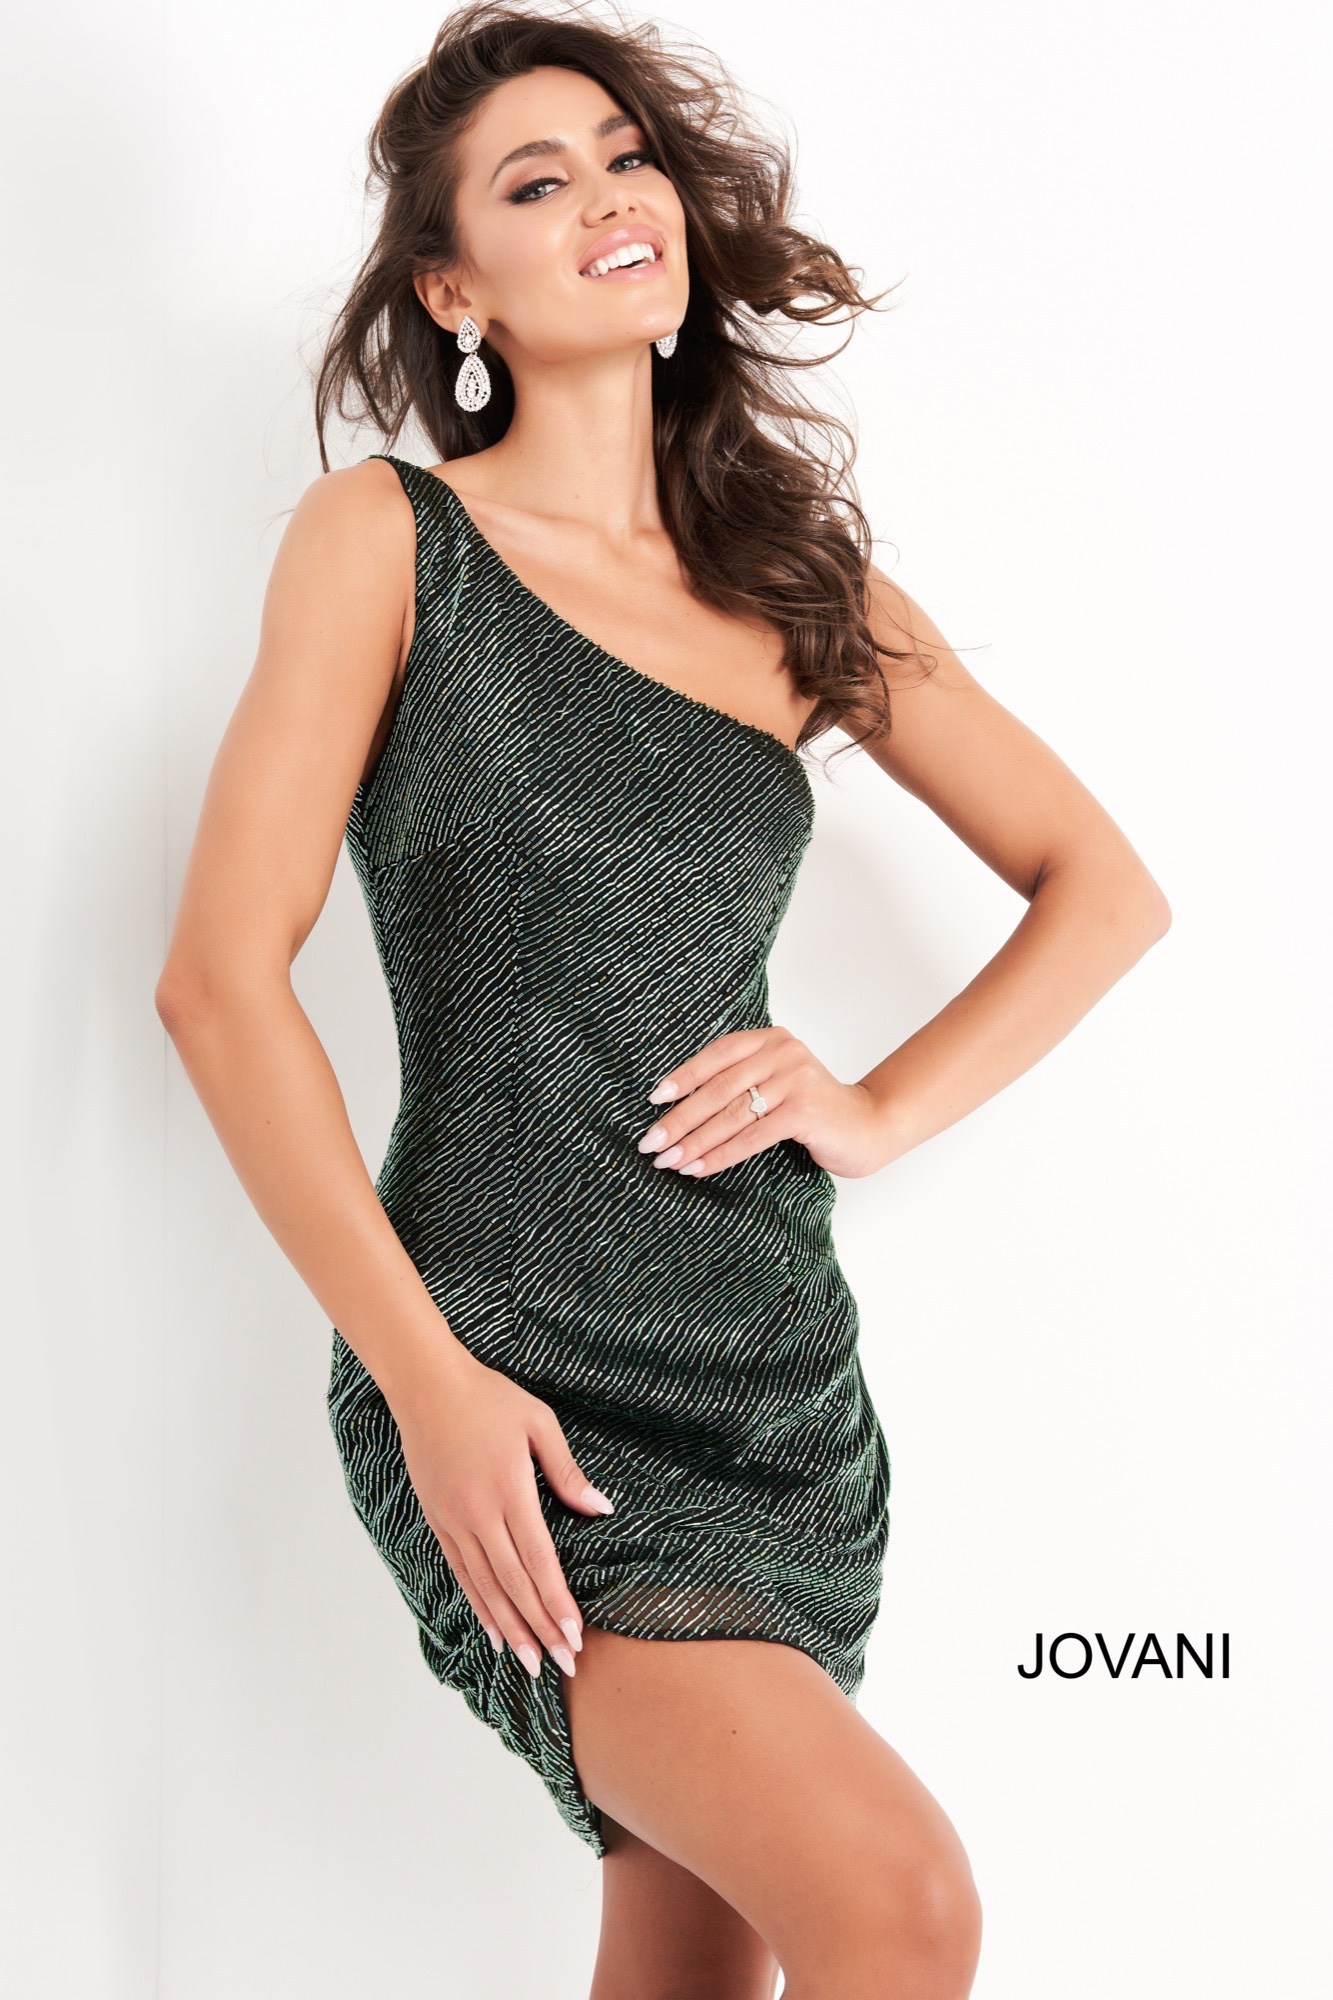 Jovani 1247 One Shoulder Beaded Short Dress